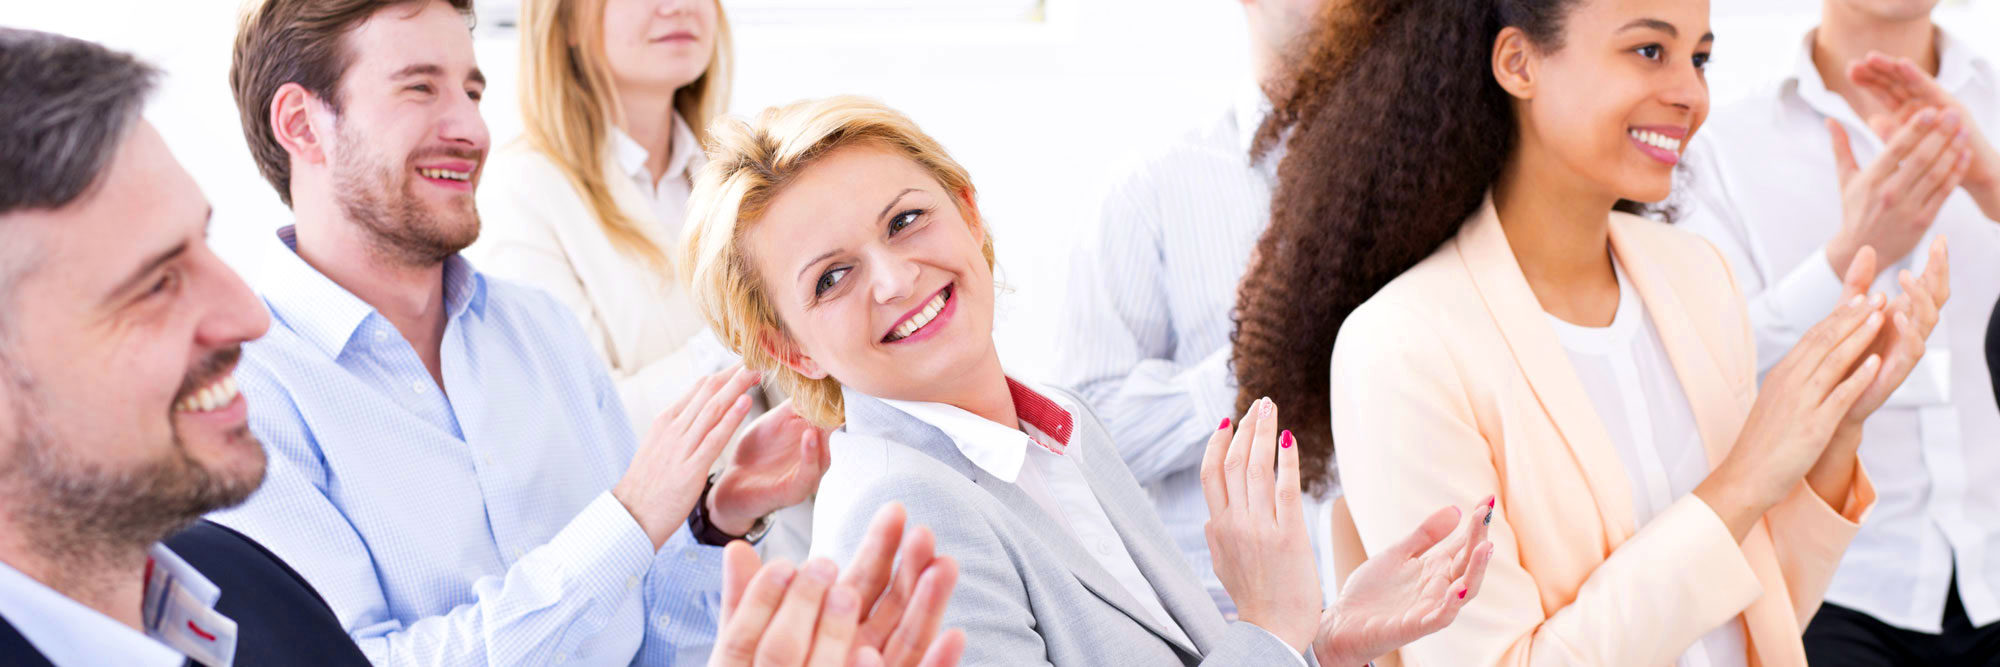 Wellbeing within the workplace. Customer testimonials